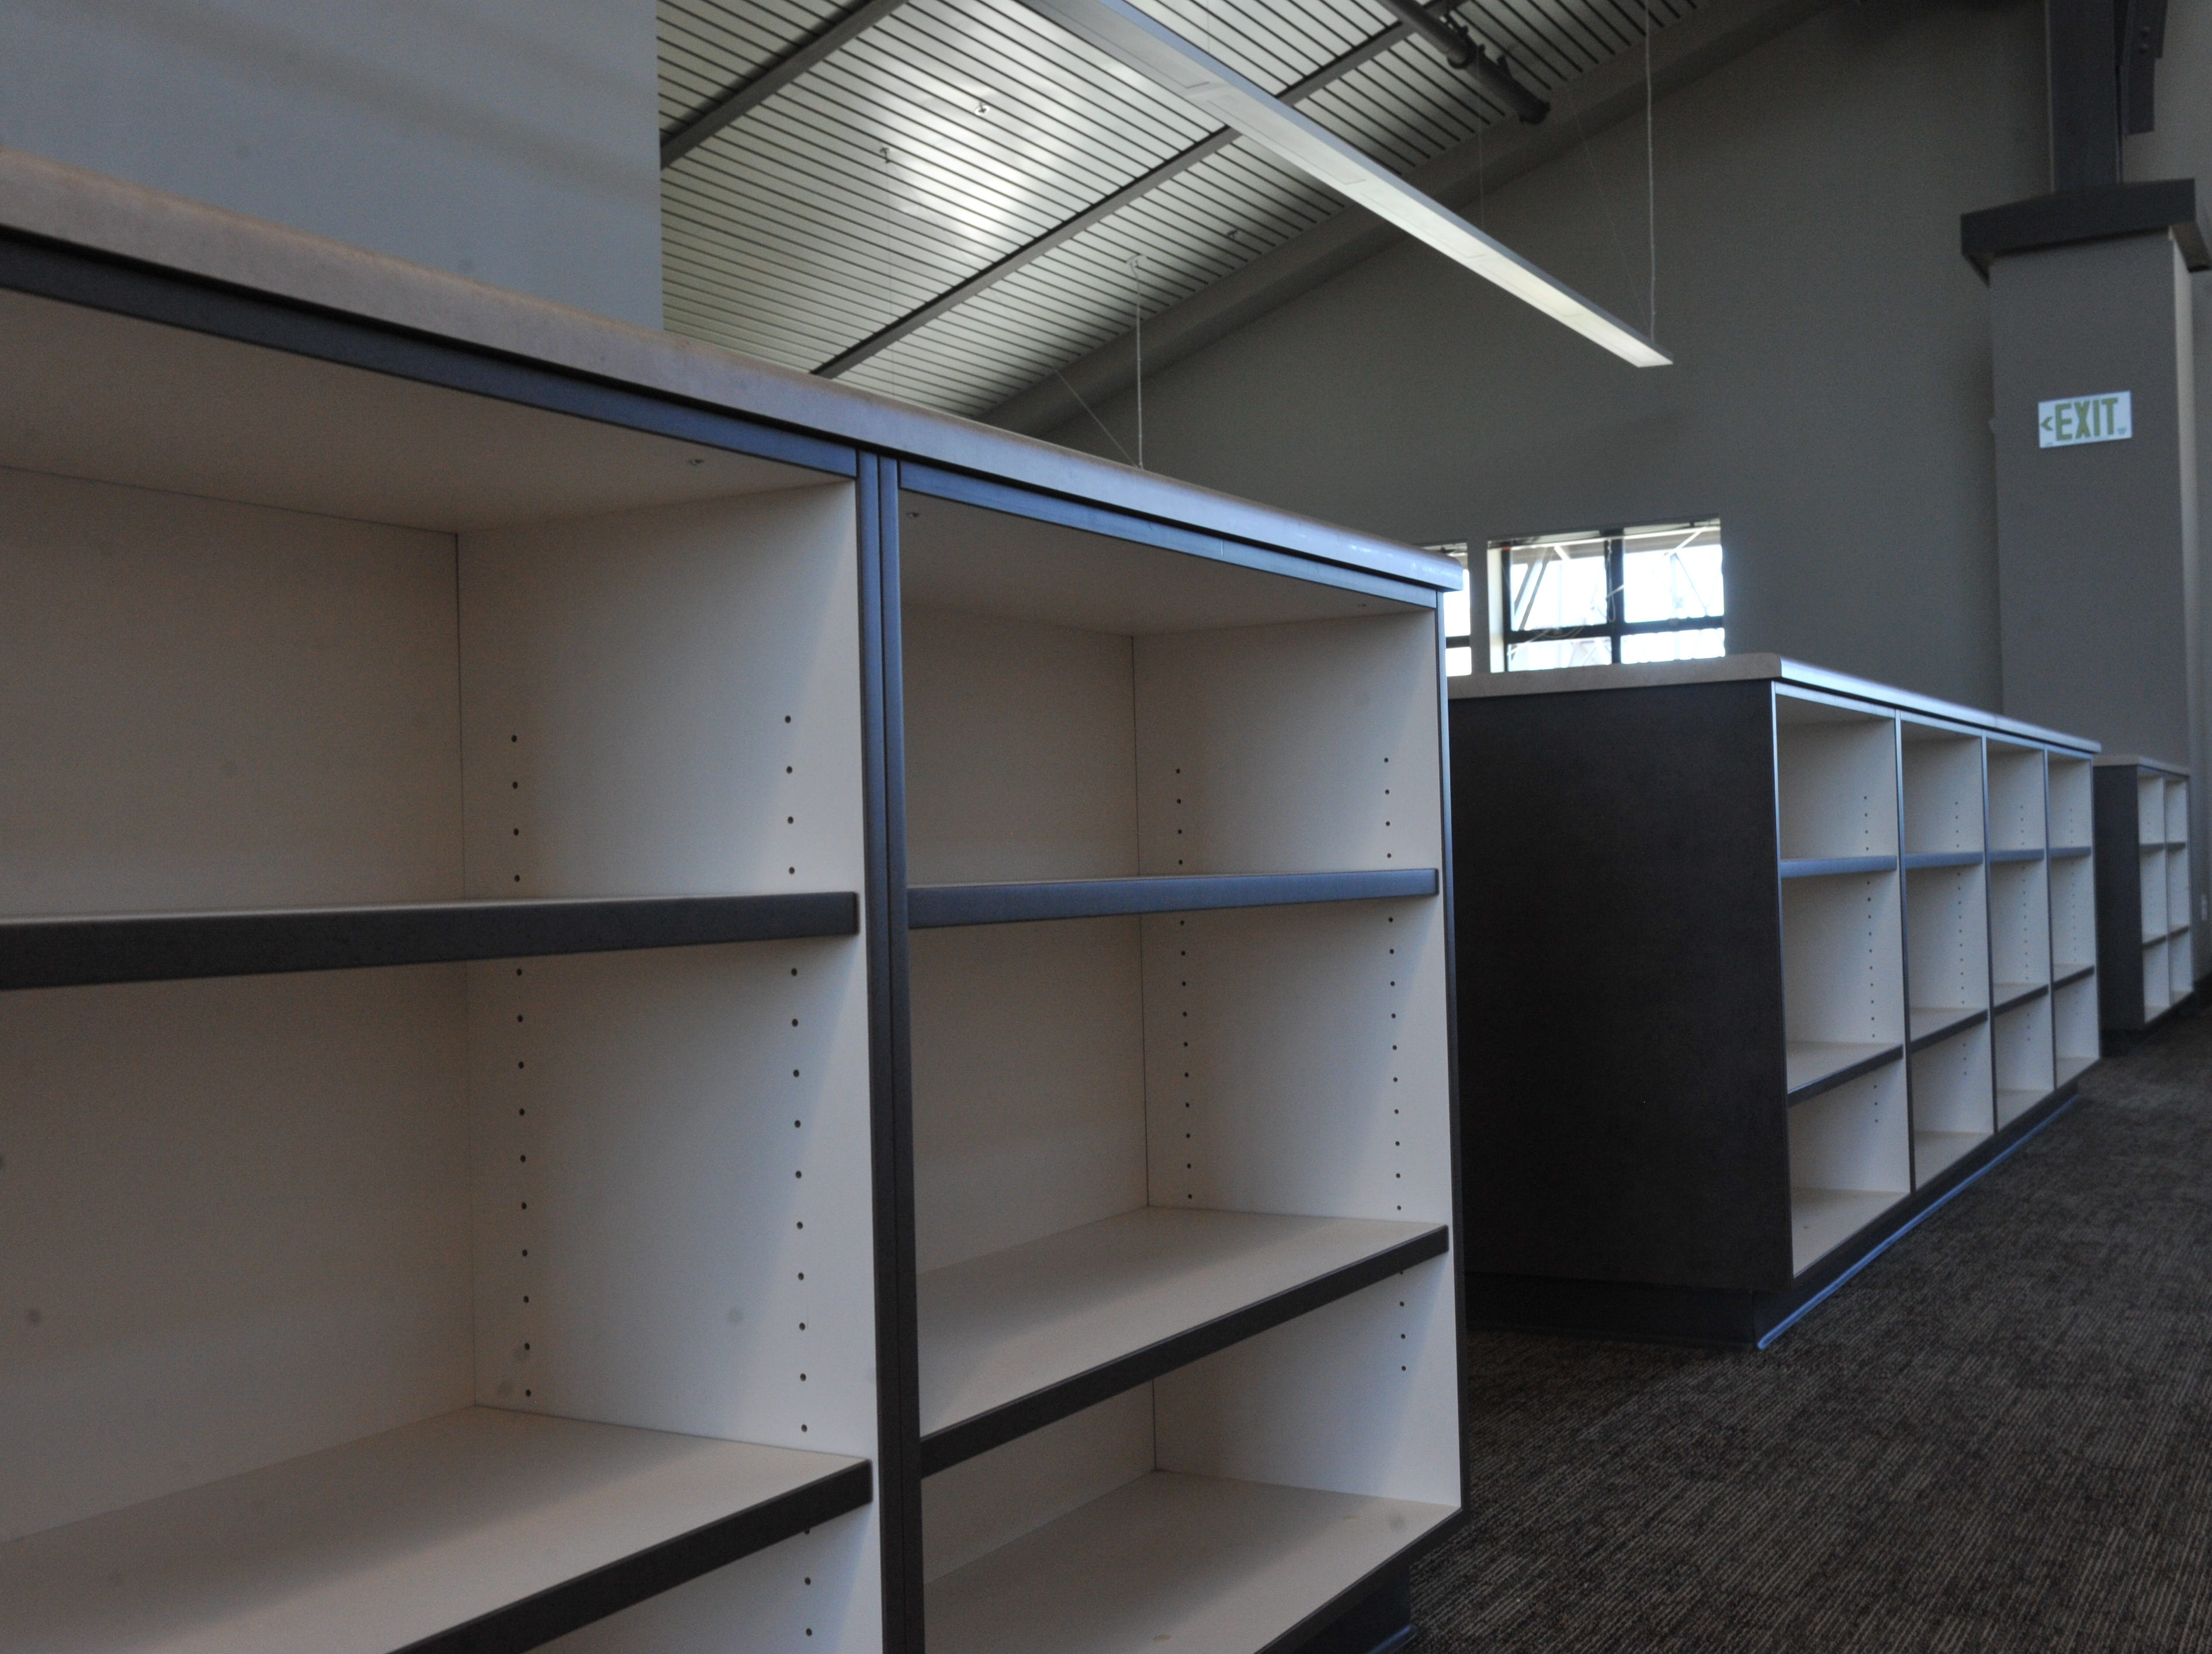 Shelves will soon be filled with books at Rancho San Juan High School's library.